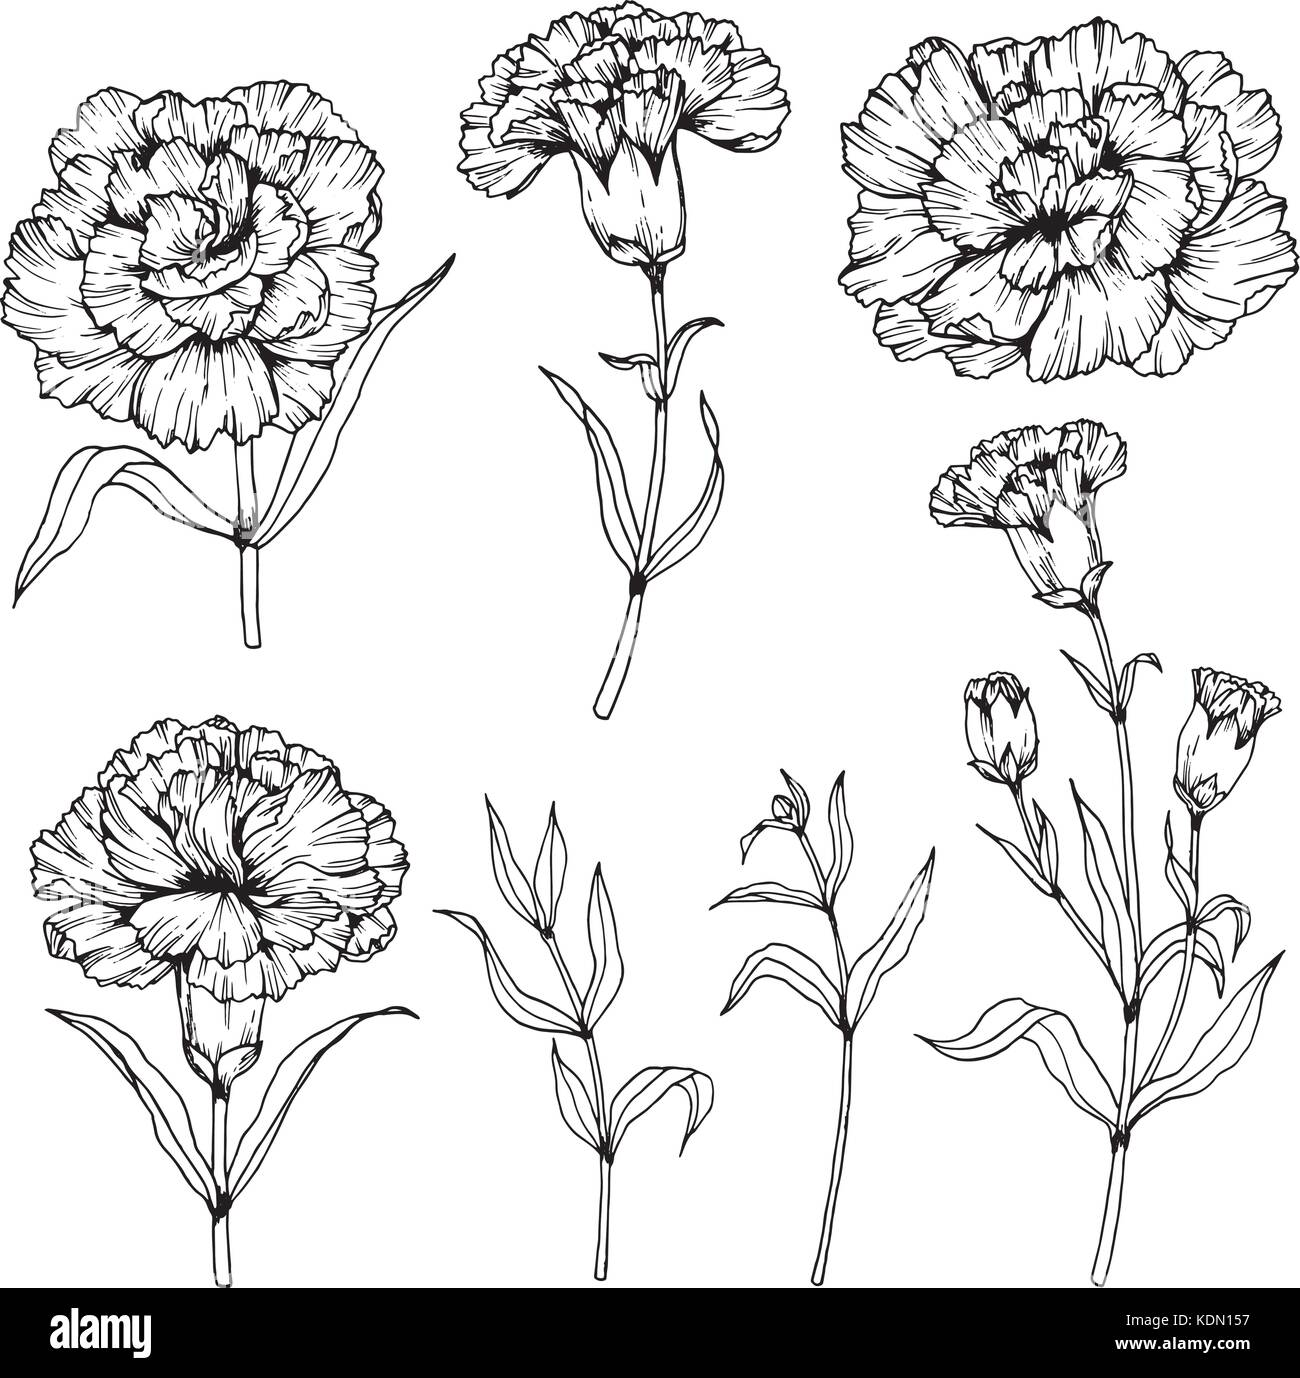 Carnation flower drawing  illustration. Black and white with line art. Stock Vector